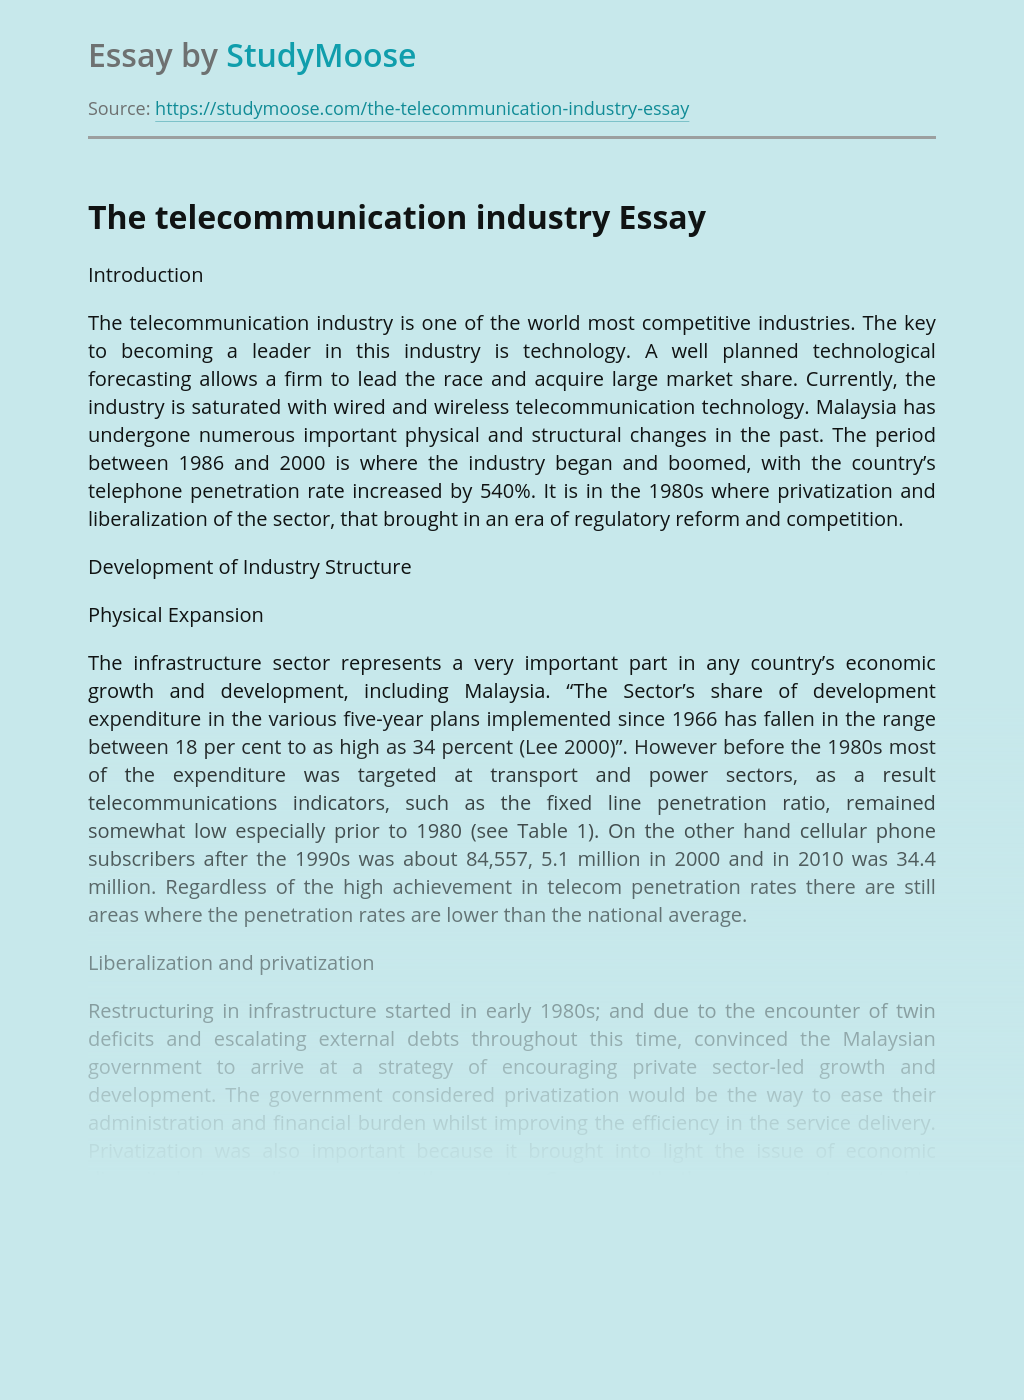 The telecommunication industry